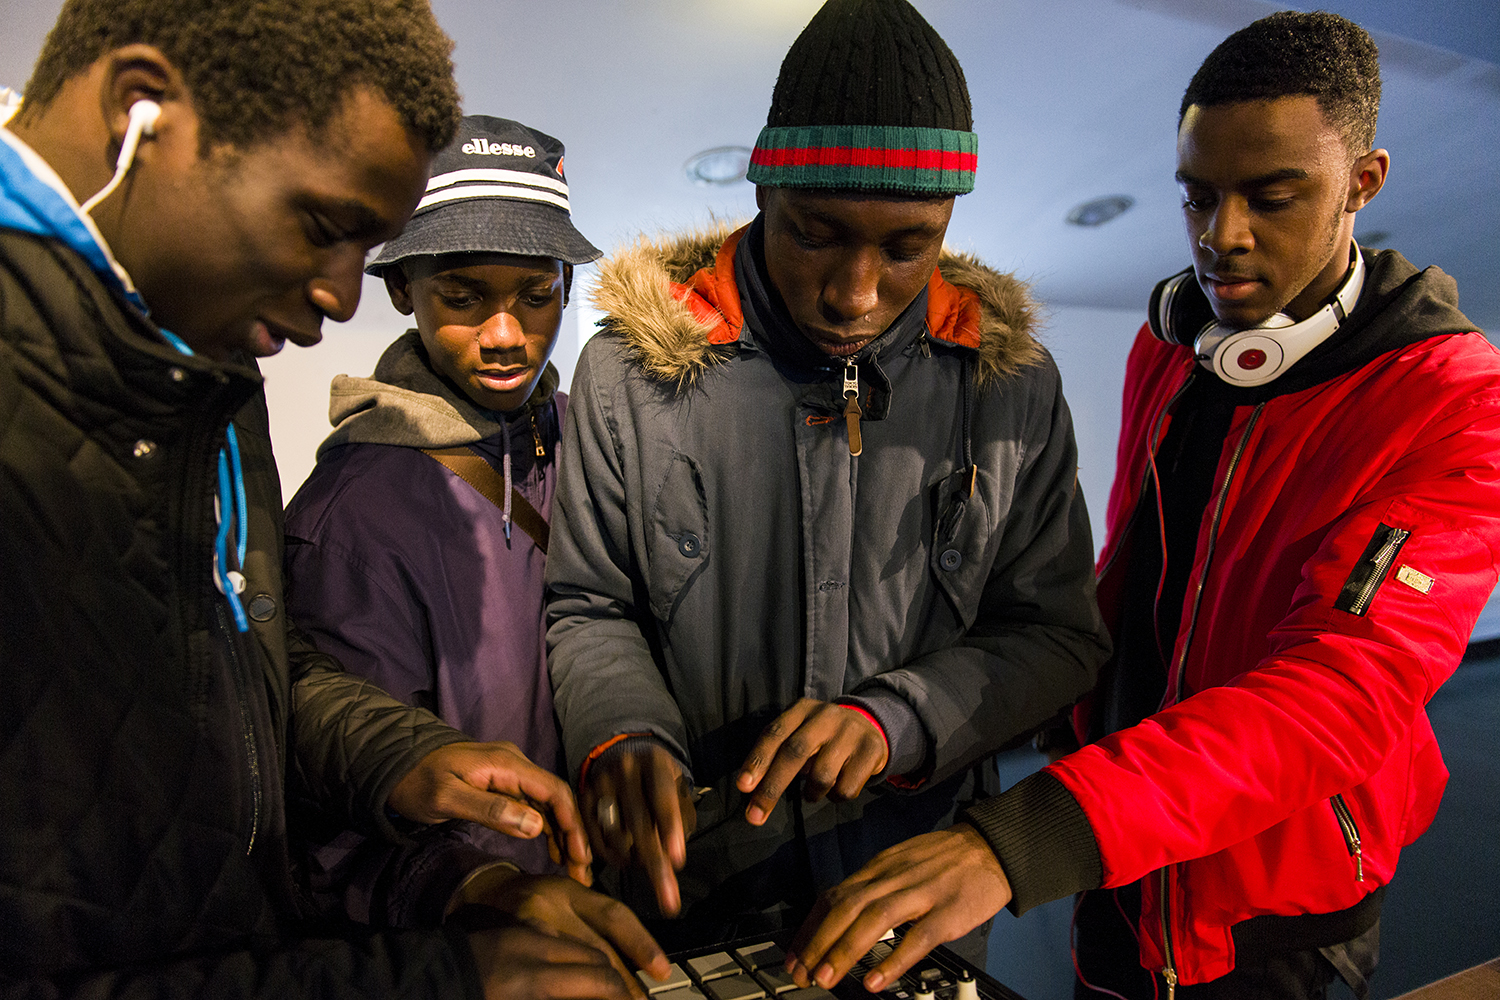 REVIEW: #IITSPIRATION CONNECTS x RICH MIX YOUTH TAKEOVER FESTIVAL FEB. 2016